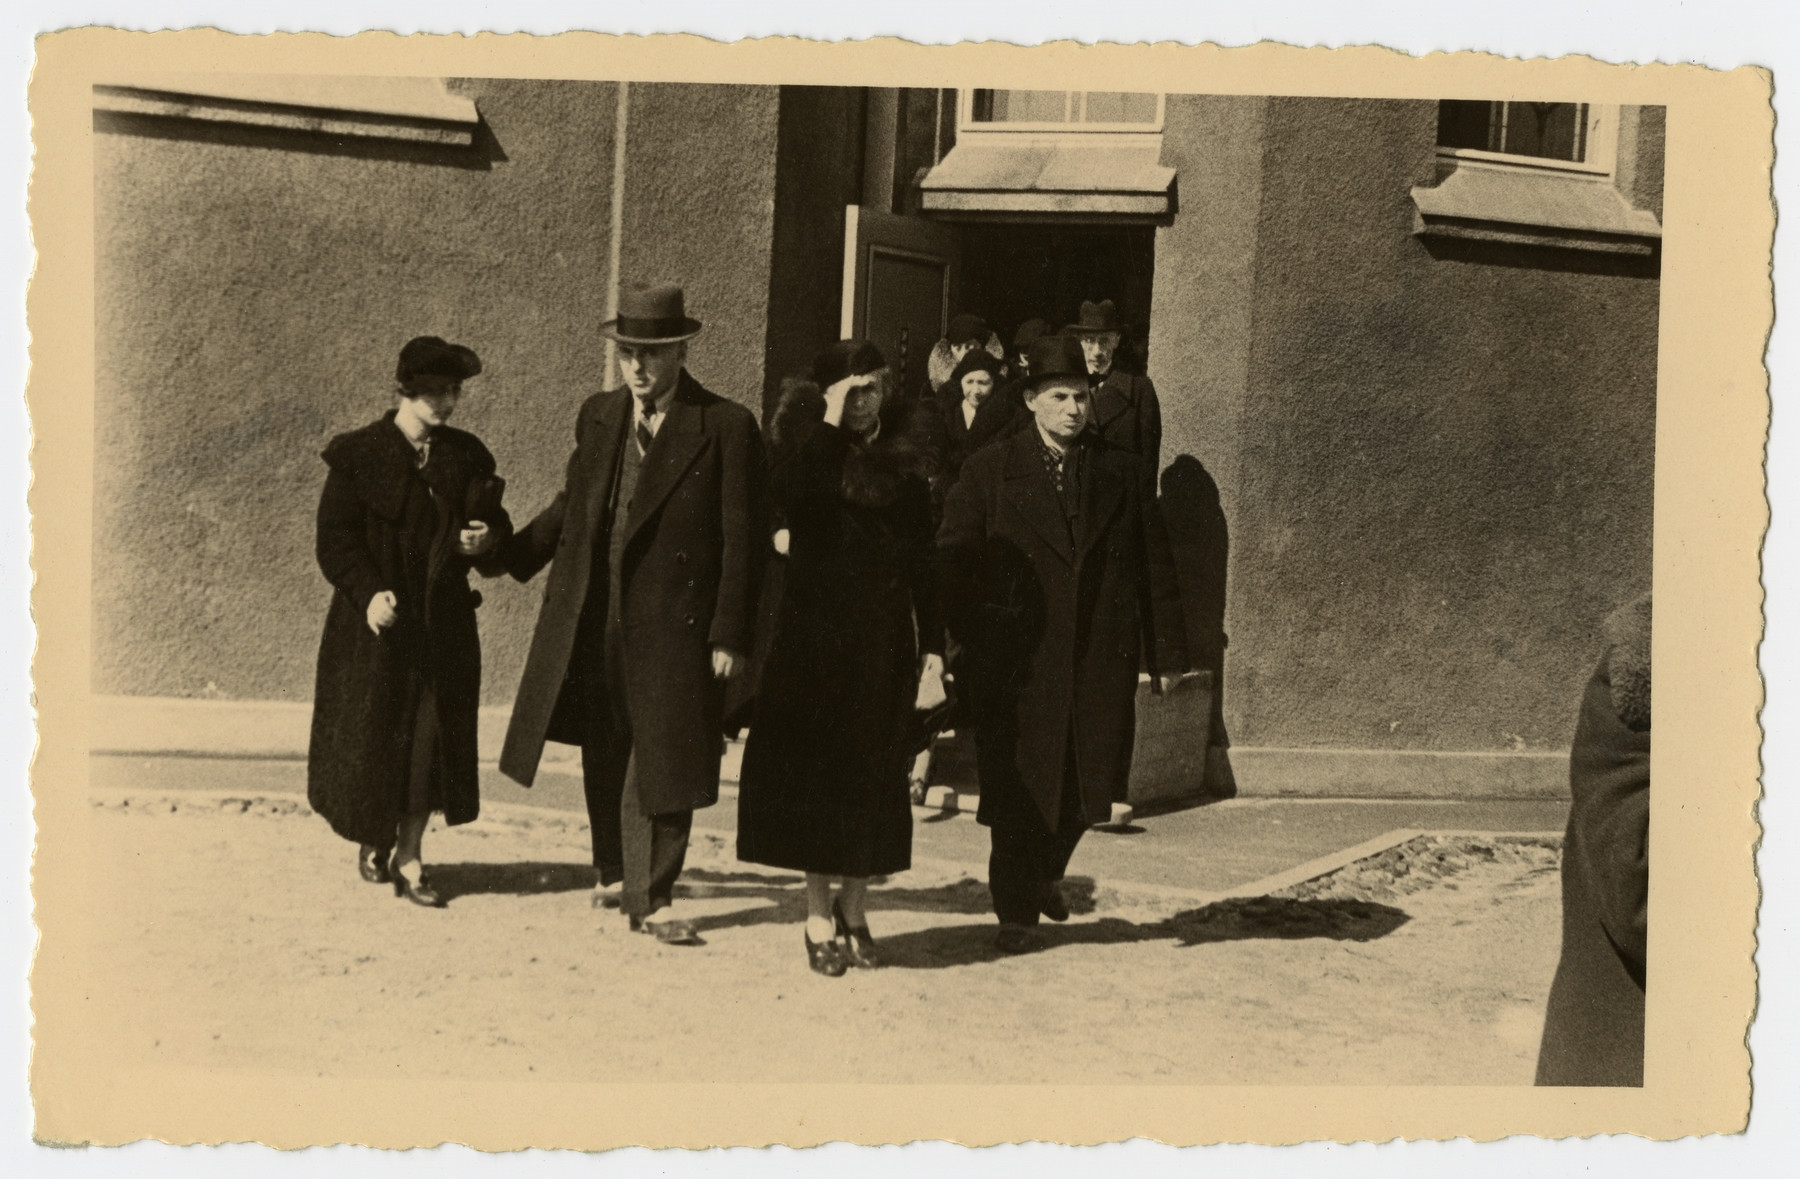 Mourners walk to the gravesite prior to the burial of Freida Albin.  Among those pictured are in frront:  Dr. Jacobsohn, Mr. Klein, and Mrs. Rosenthal.